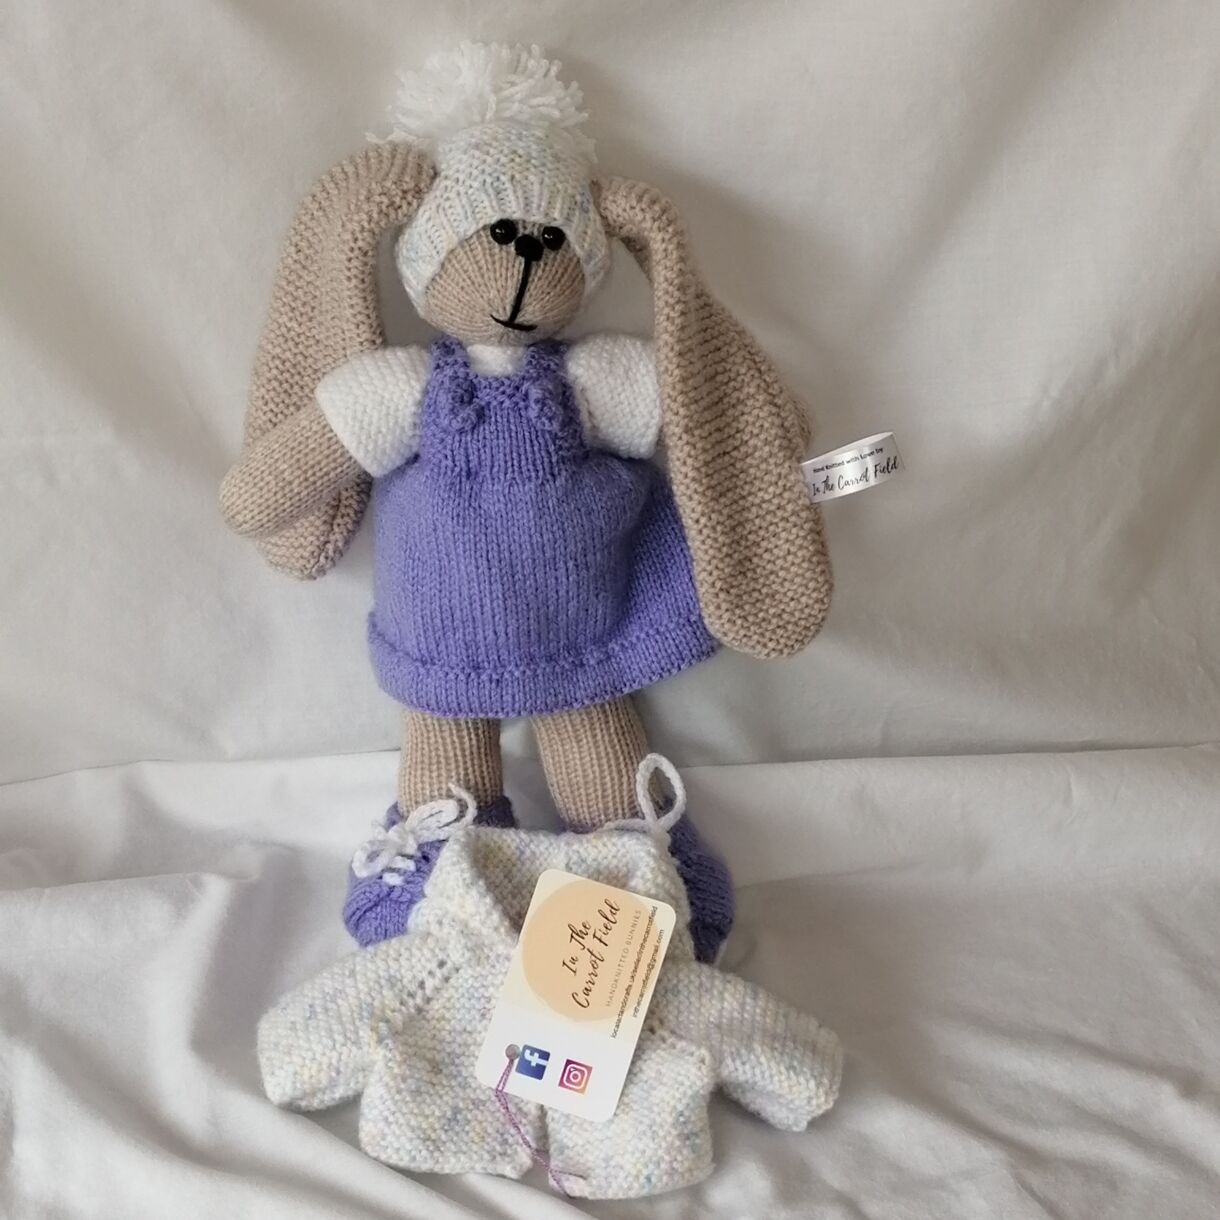 Beautifully Hand Knitted Bunny Girl in a Lavender Pinafore and Shoes and a Co-ordinated Hat and Hooded Jacket